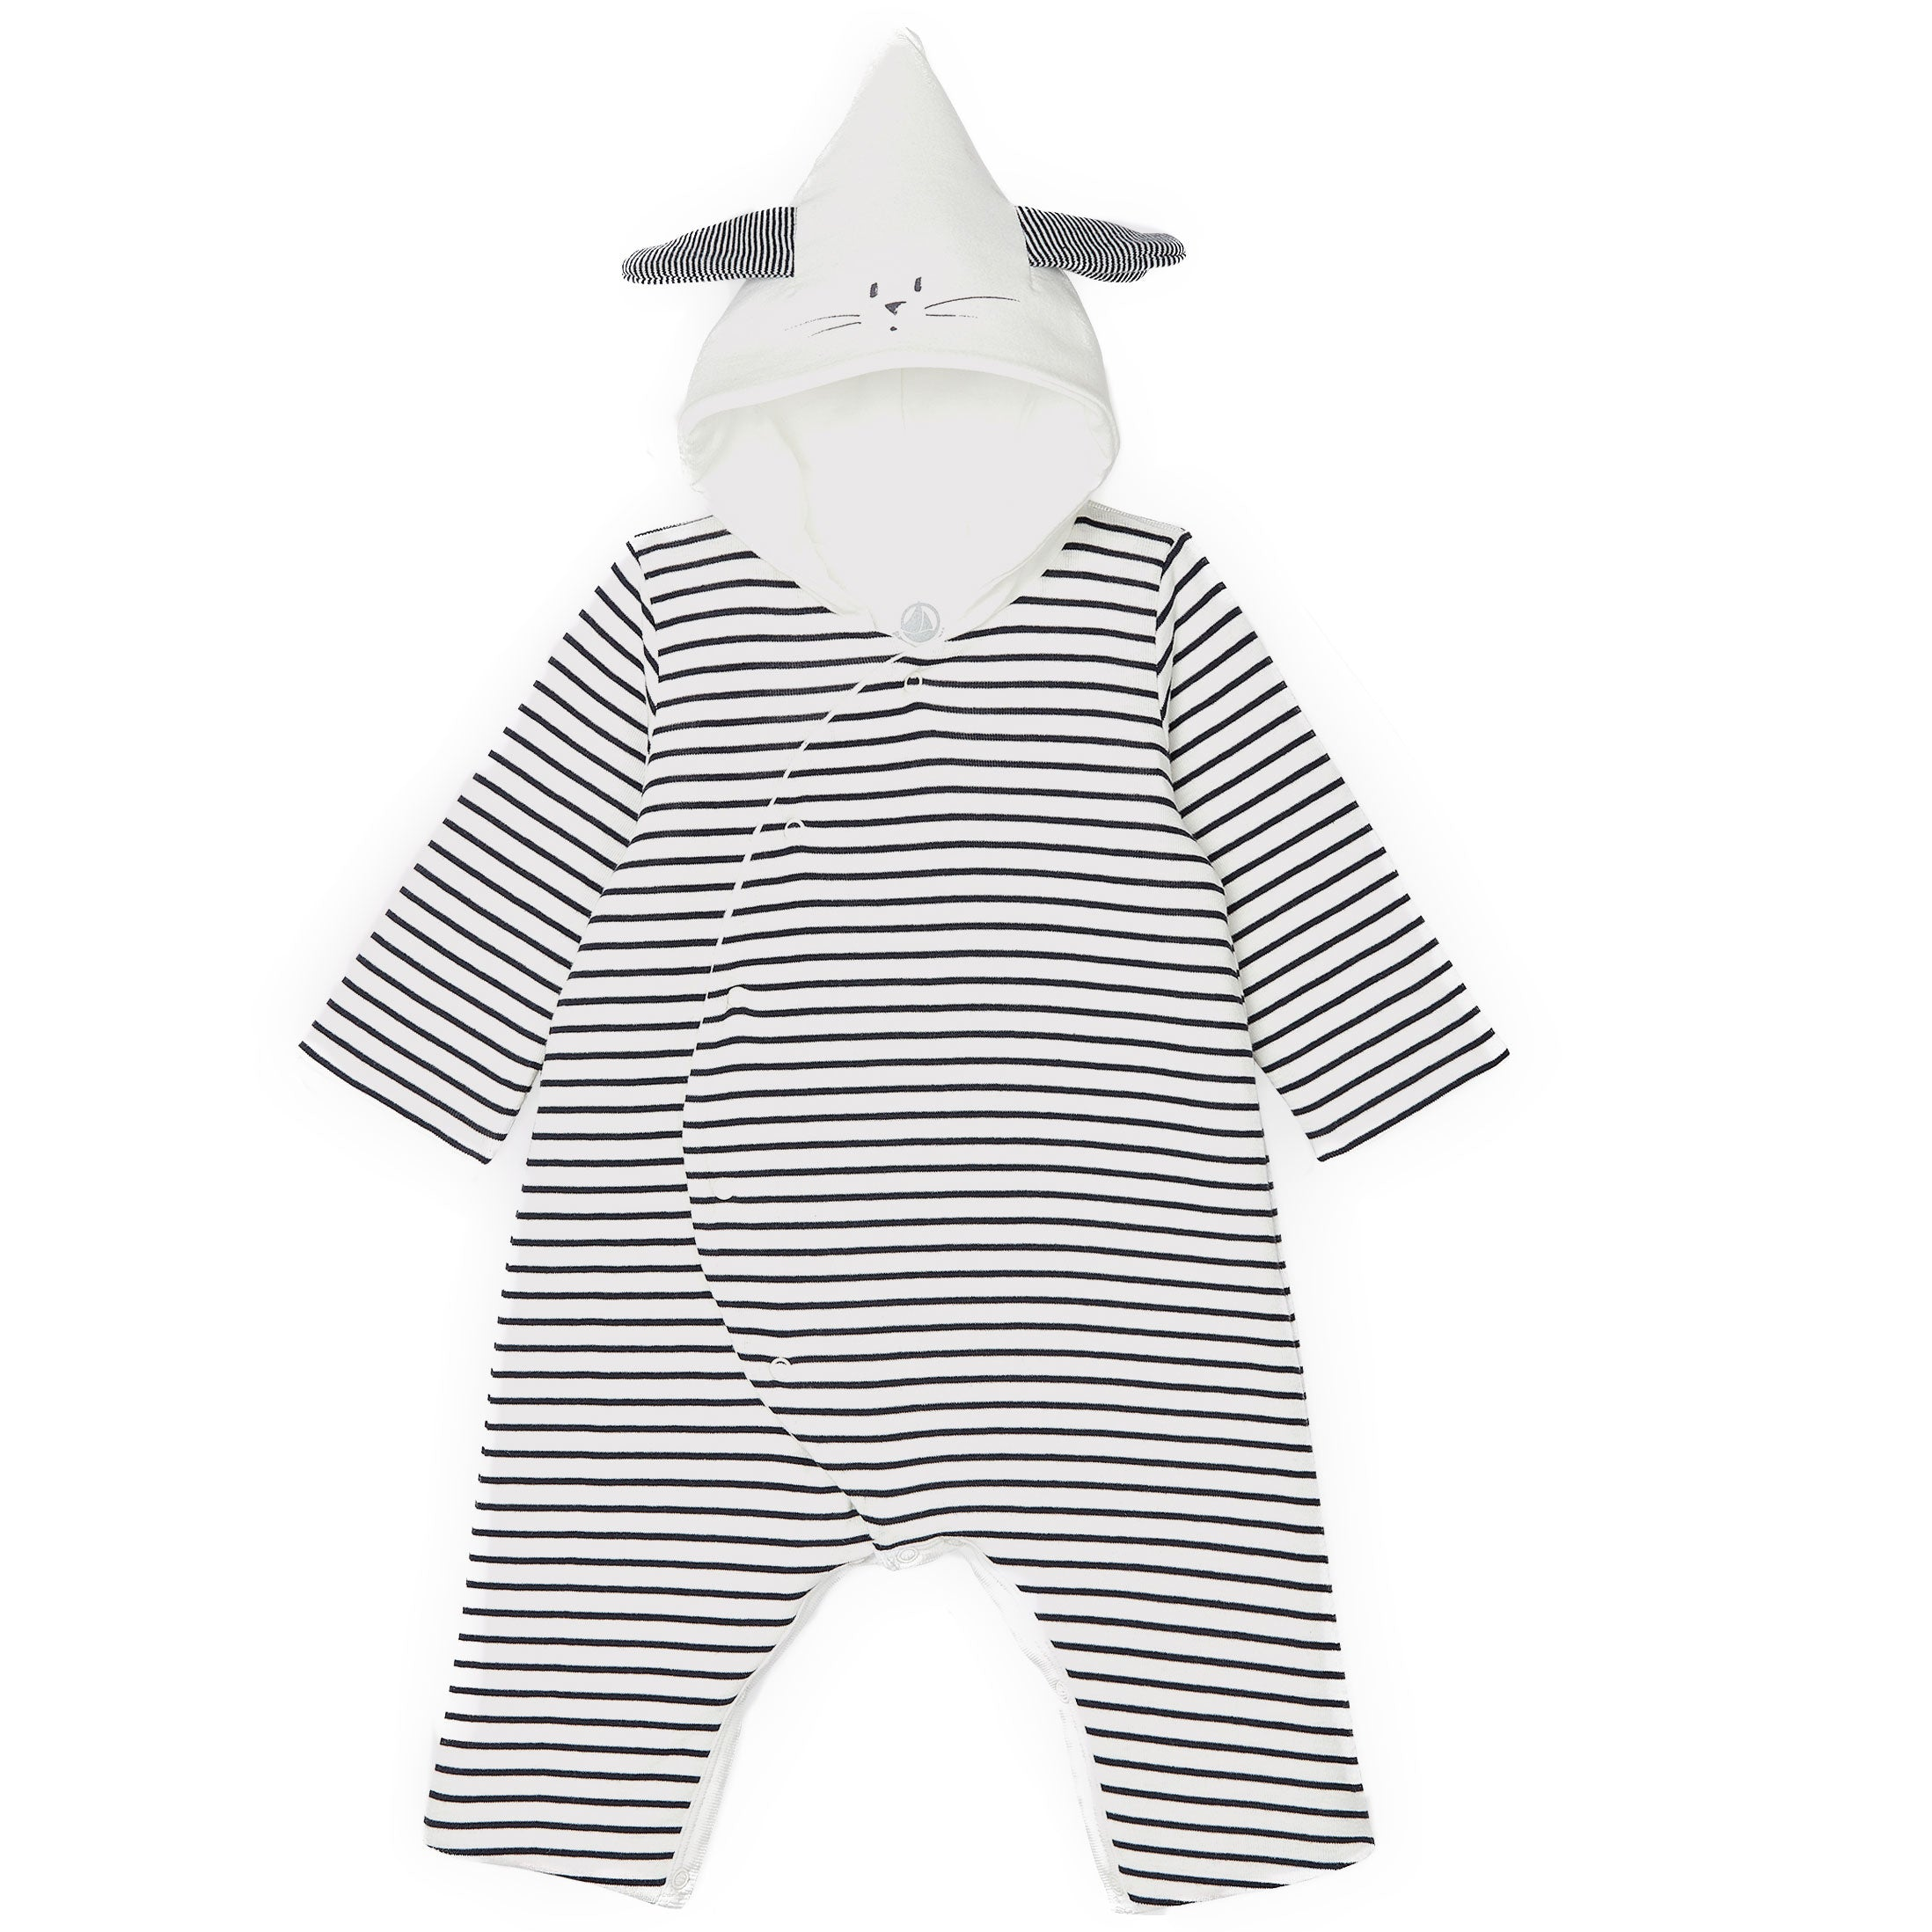 Petit Bateau Baby Gift at Bonjour Baby Baskets